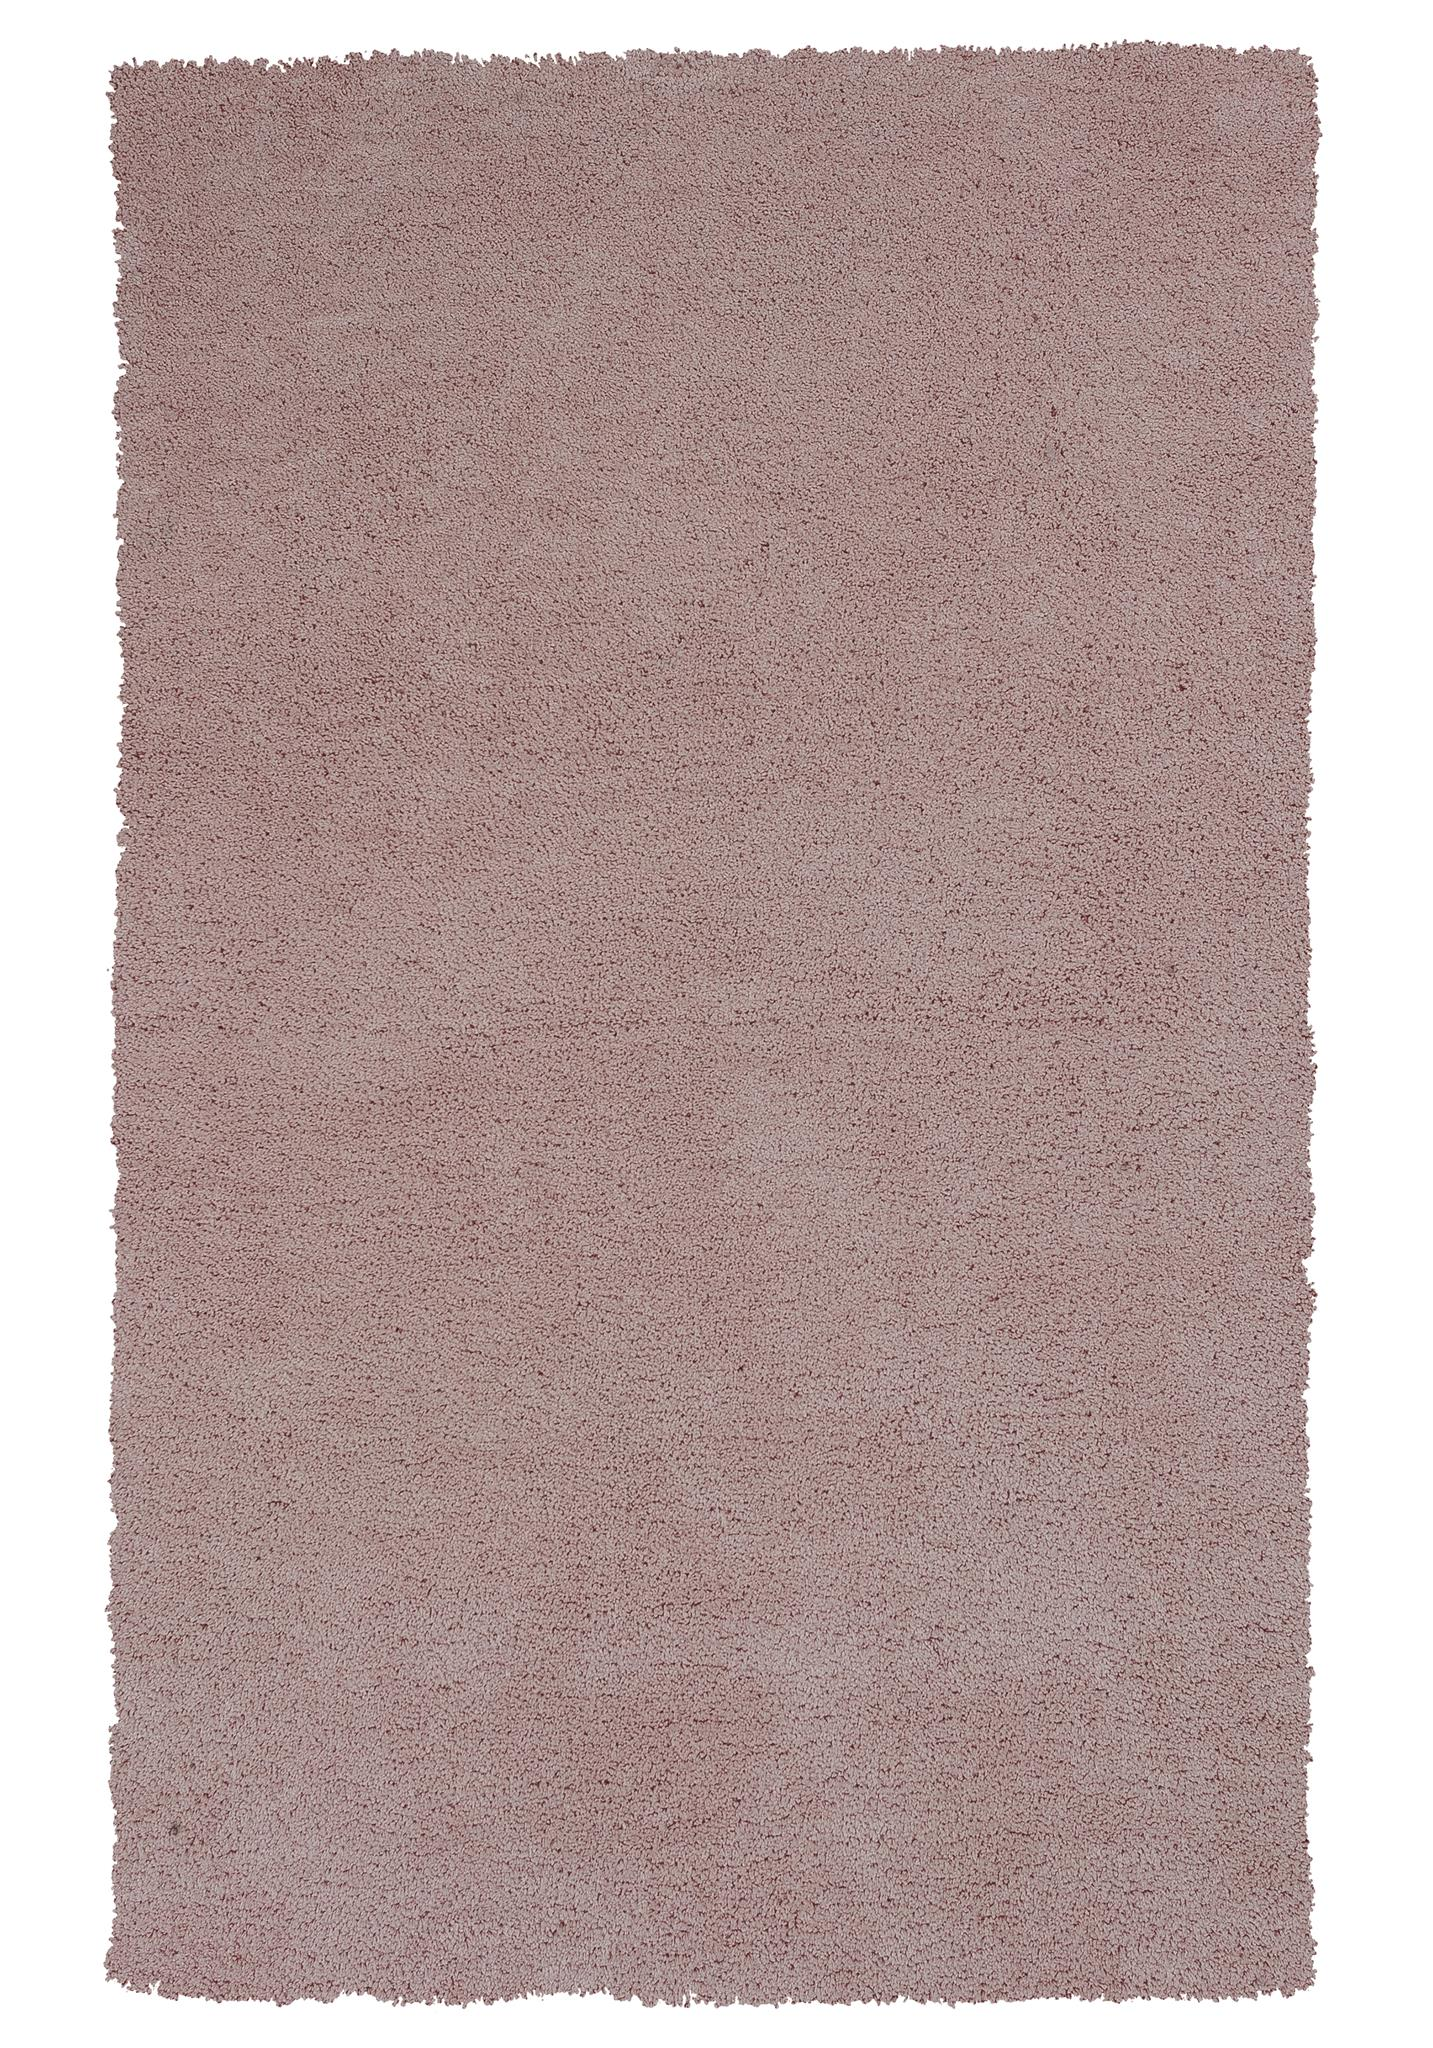 Bliss 1575 Rose Pink Shag Shag